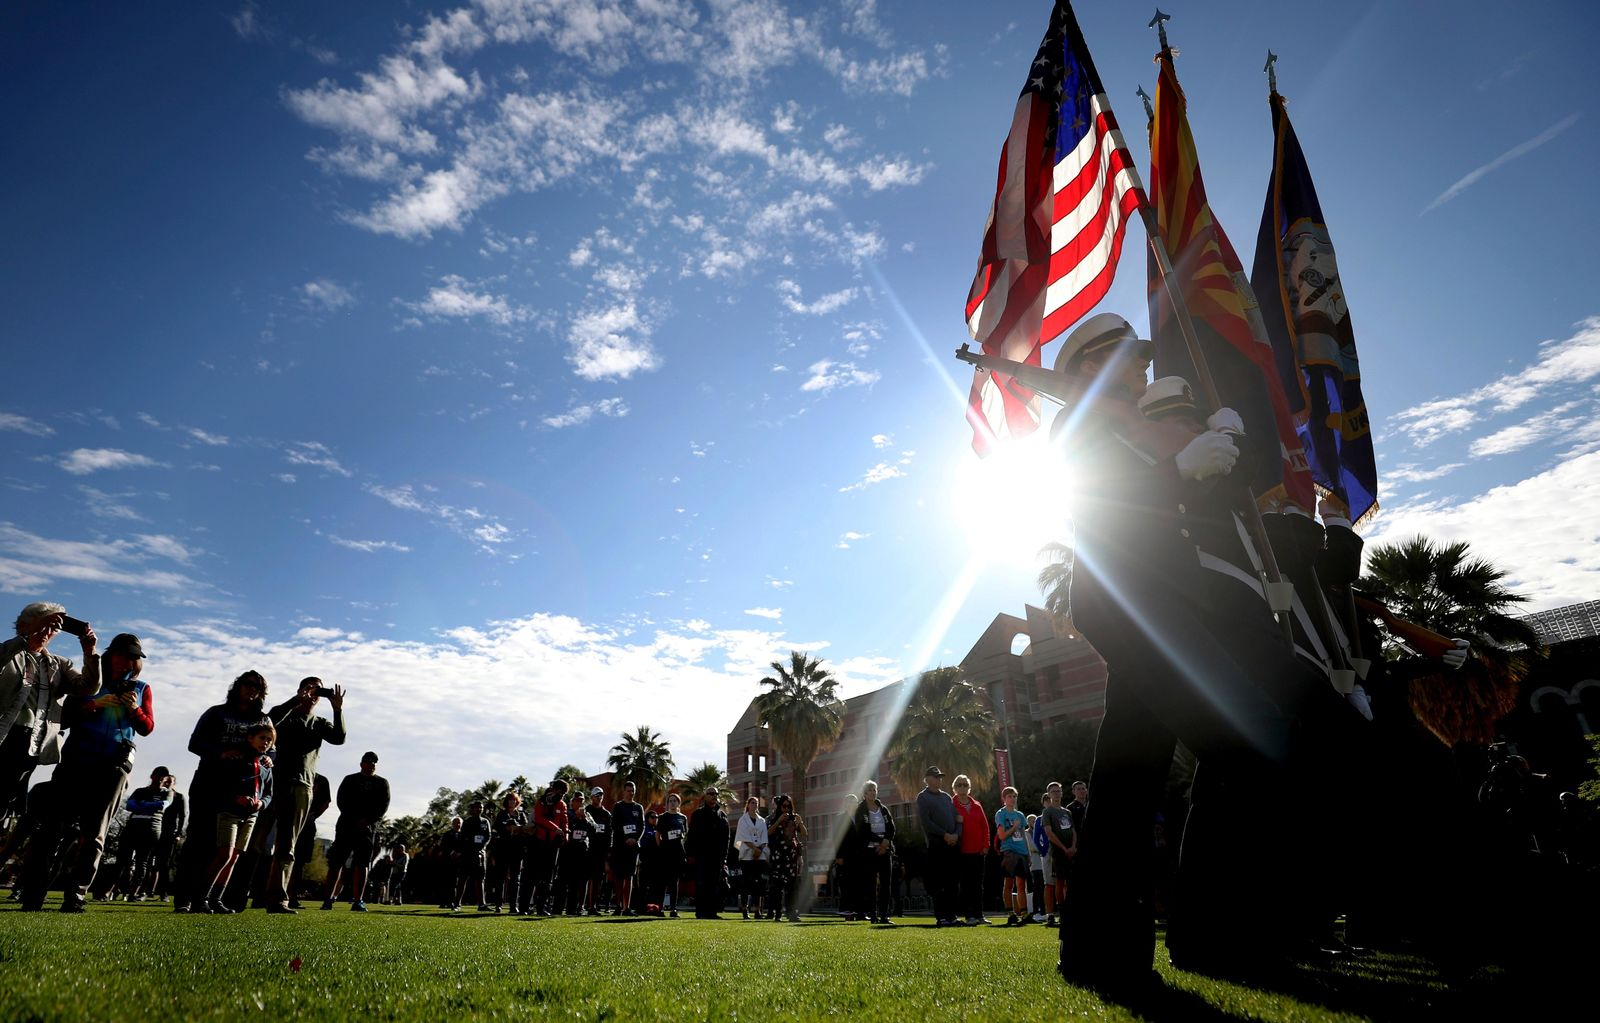 The University of Arizona Navy ROTC color guard present the colors during ceremonies on the school's mall commemorating the USS Arizona and Pearl Harbor Day, Tucson, Ariz., Saturday, Dec. 7, 2019. The 1941 aerial assault killed more than 2,300 U.S. troops. Nearly half — or 1,177 — were Marines and sailors serving on the USS Arizona, a battleship moored in the harbor. The vessel sank within nine minutes of being hit, taking most of its crew down with it. (Kelly Presnell/Arizona Daily Star via AP)